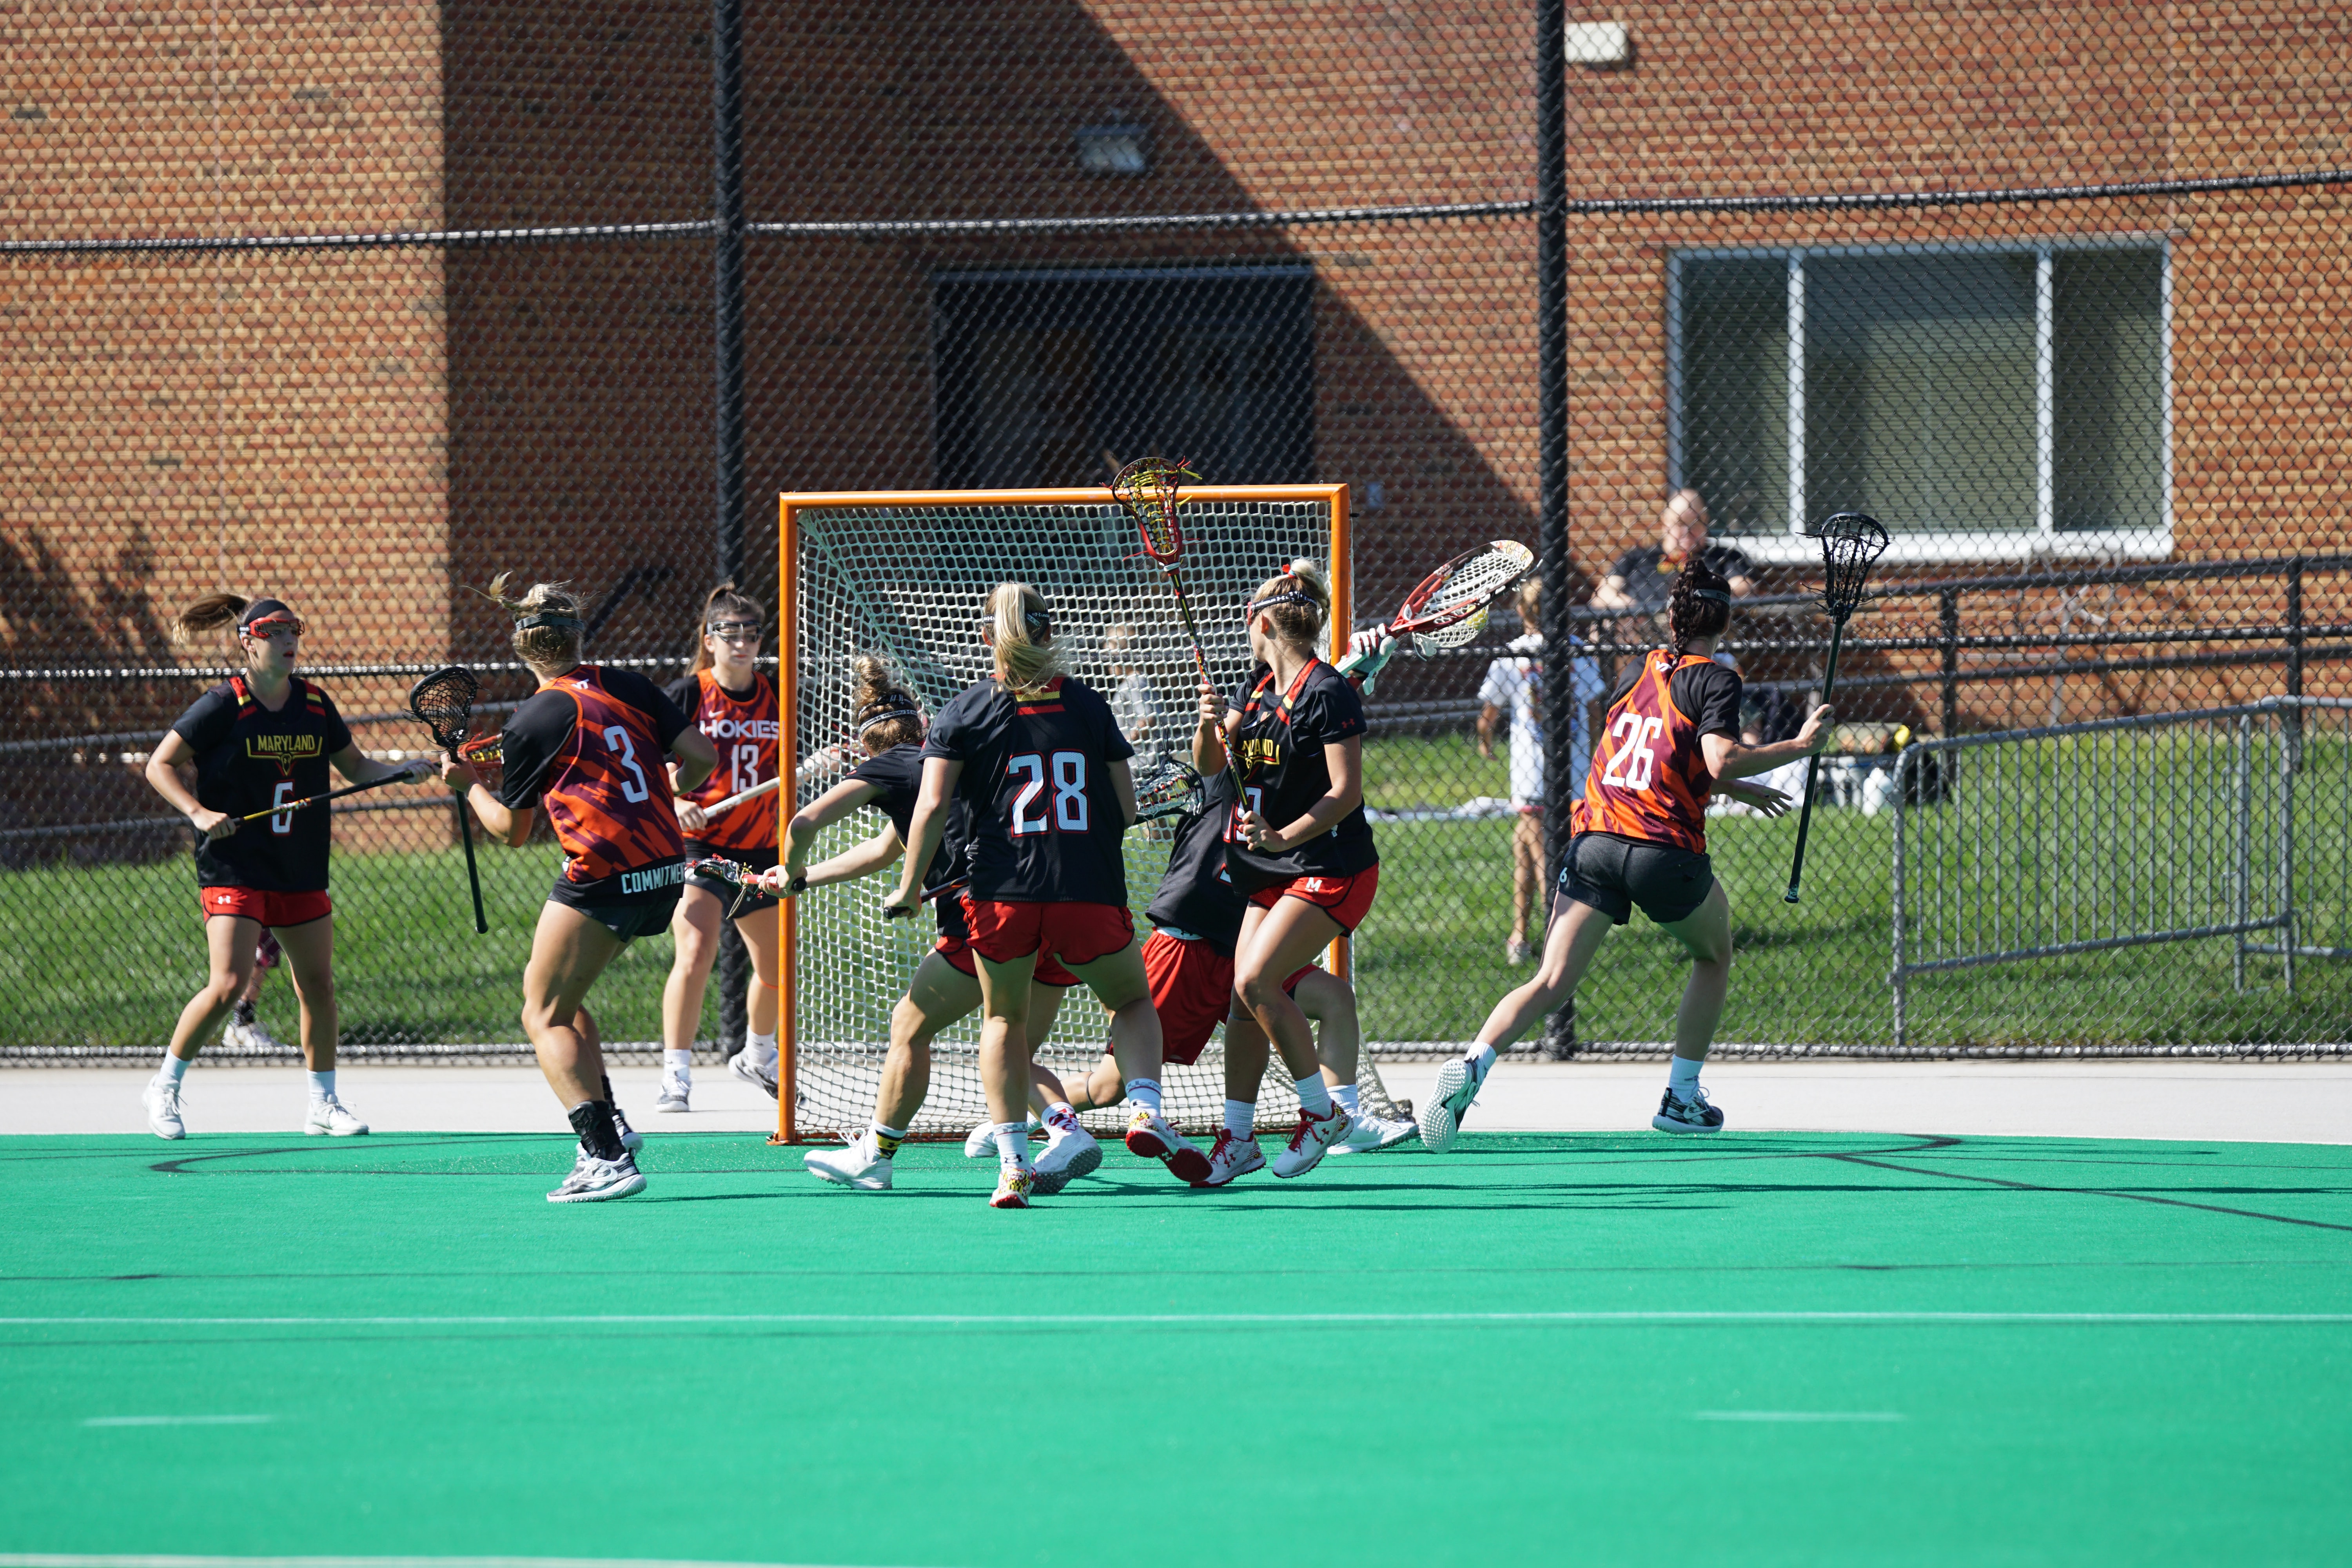 group of woman playing lacrosse during daytime